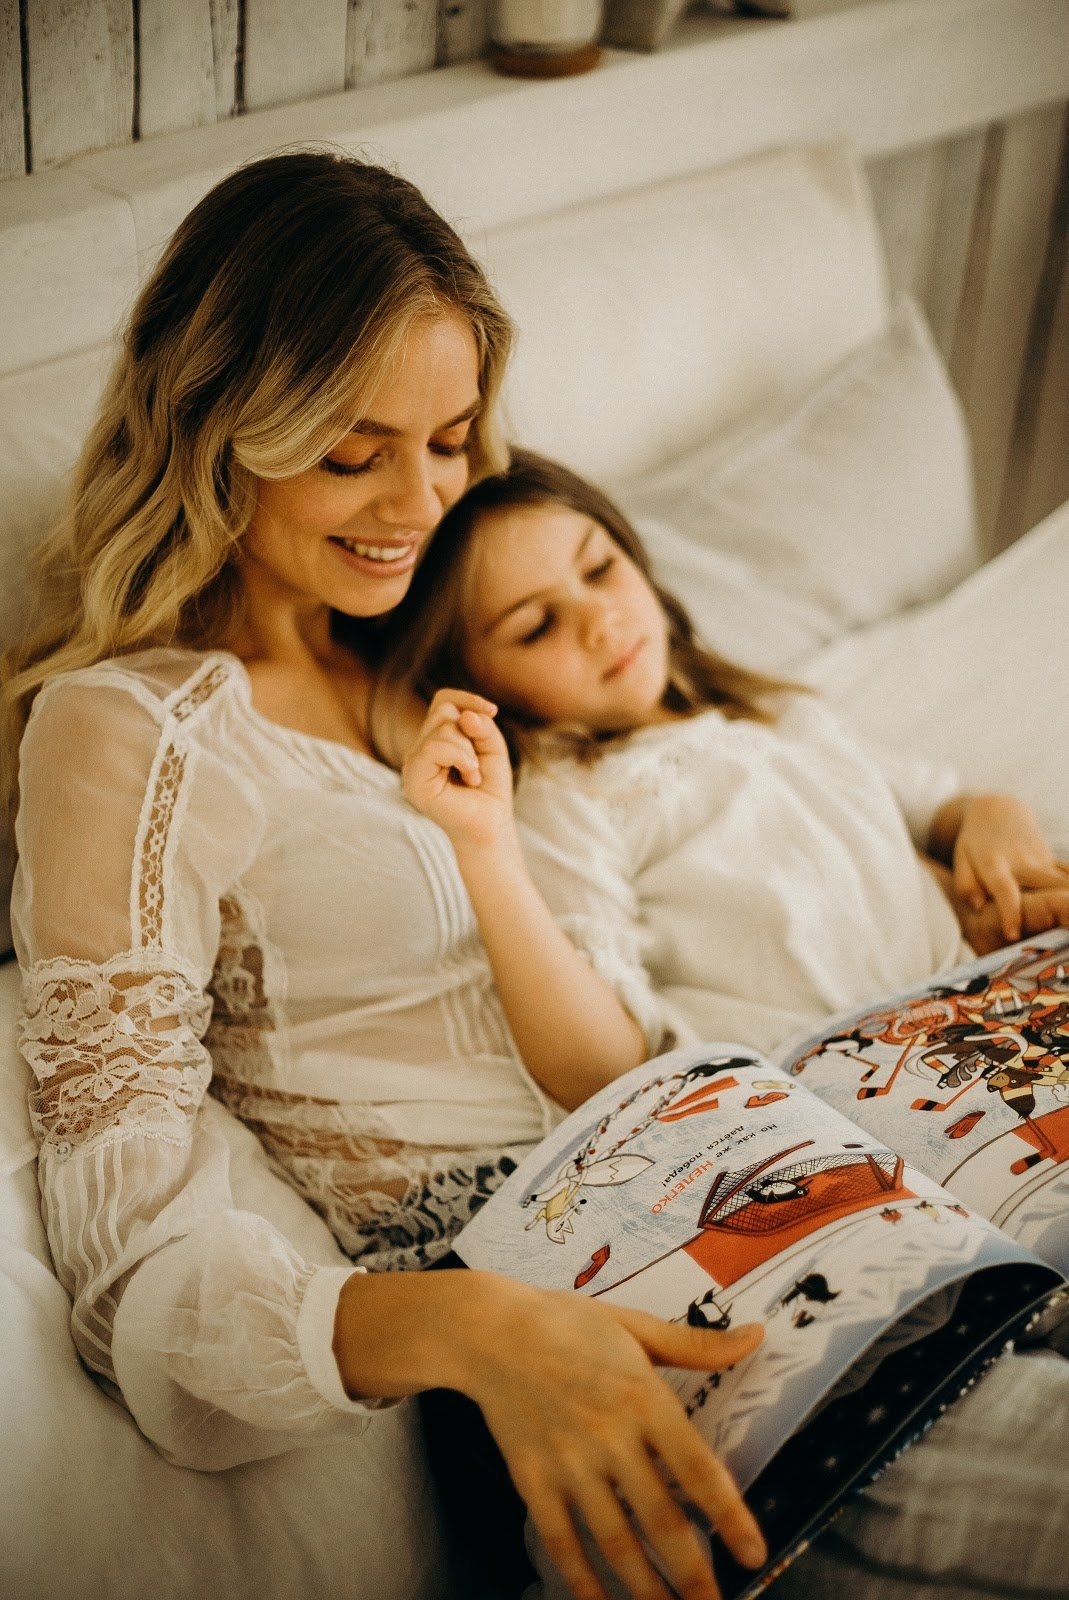 woman-and-child-in-bed-reading-magazine